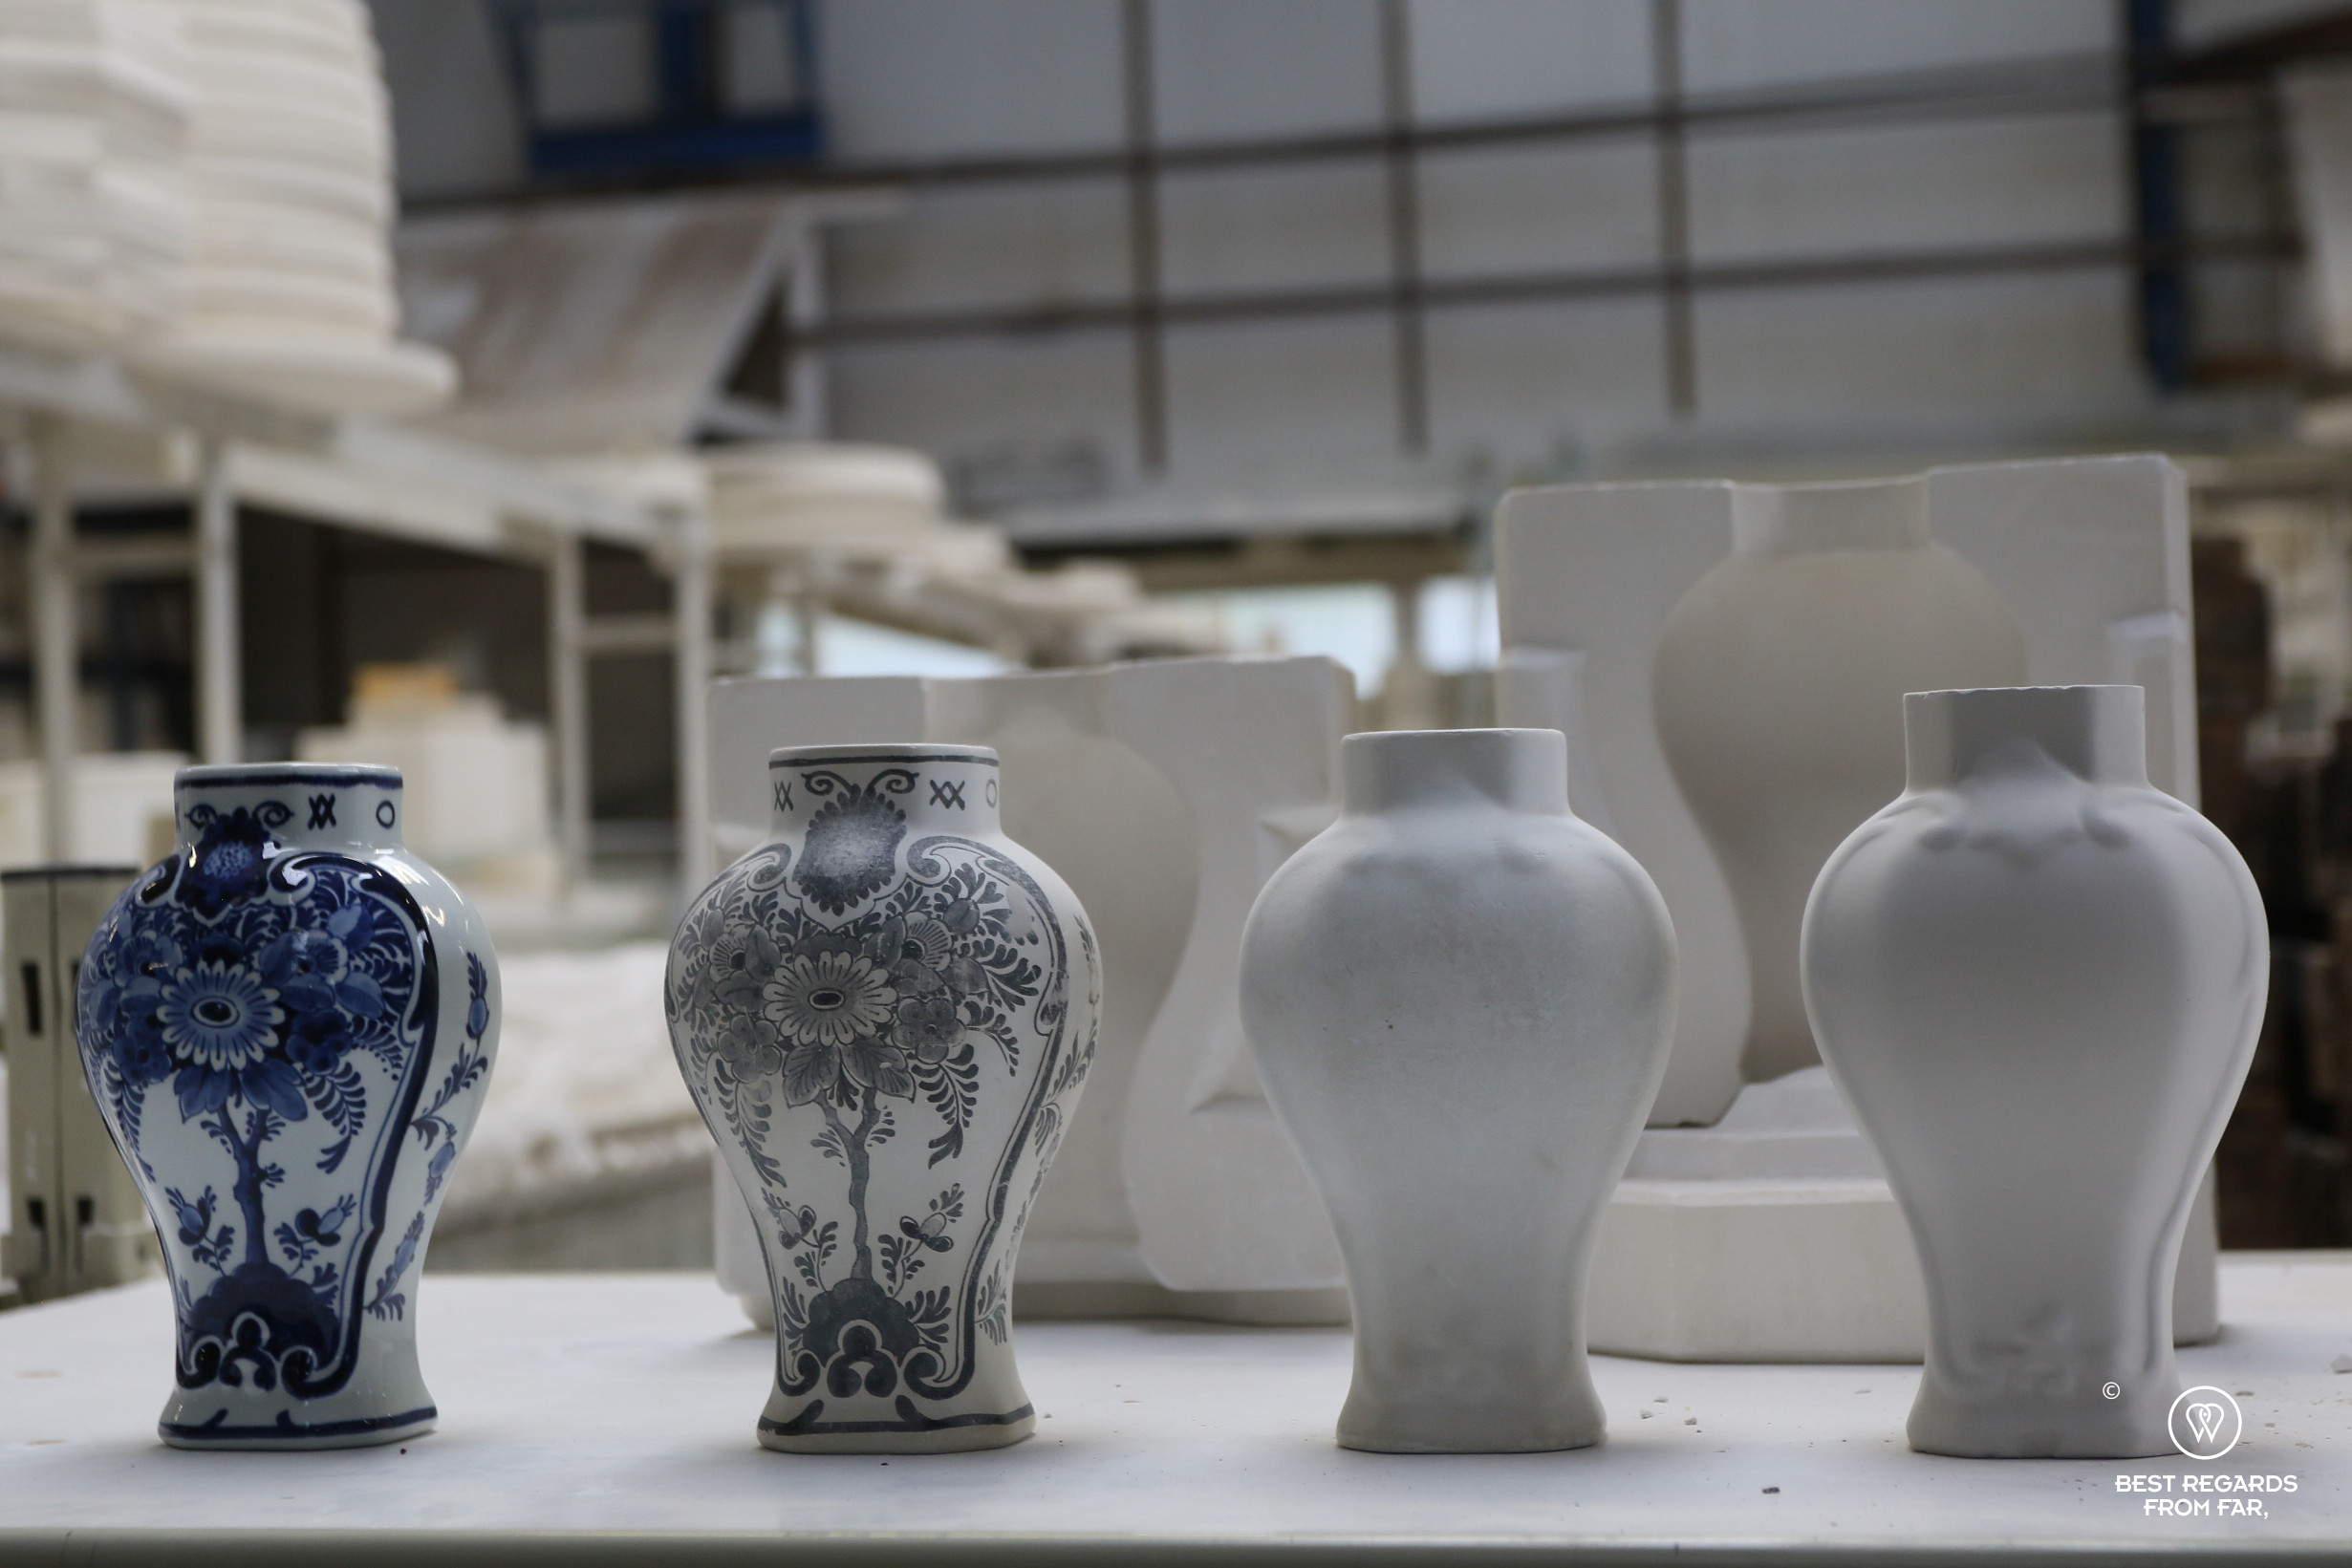 Stages of the manufacturing process of Dleft Blue, the Royal Delft factory, the Netherlands